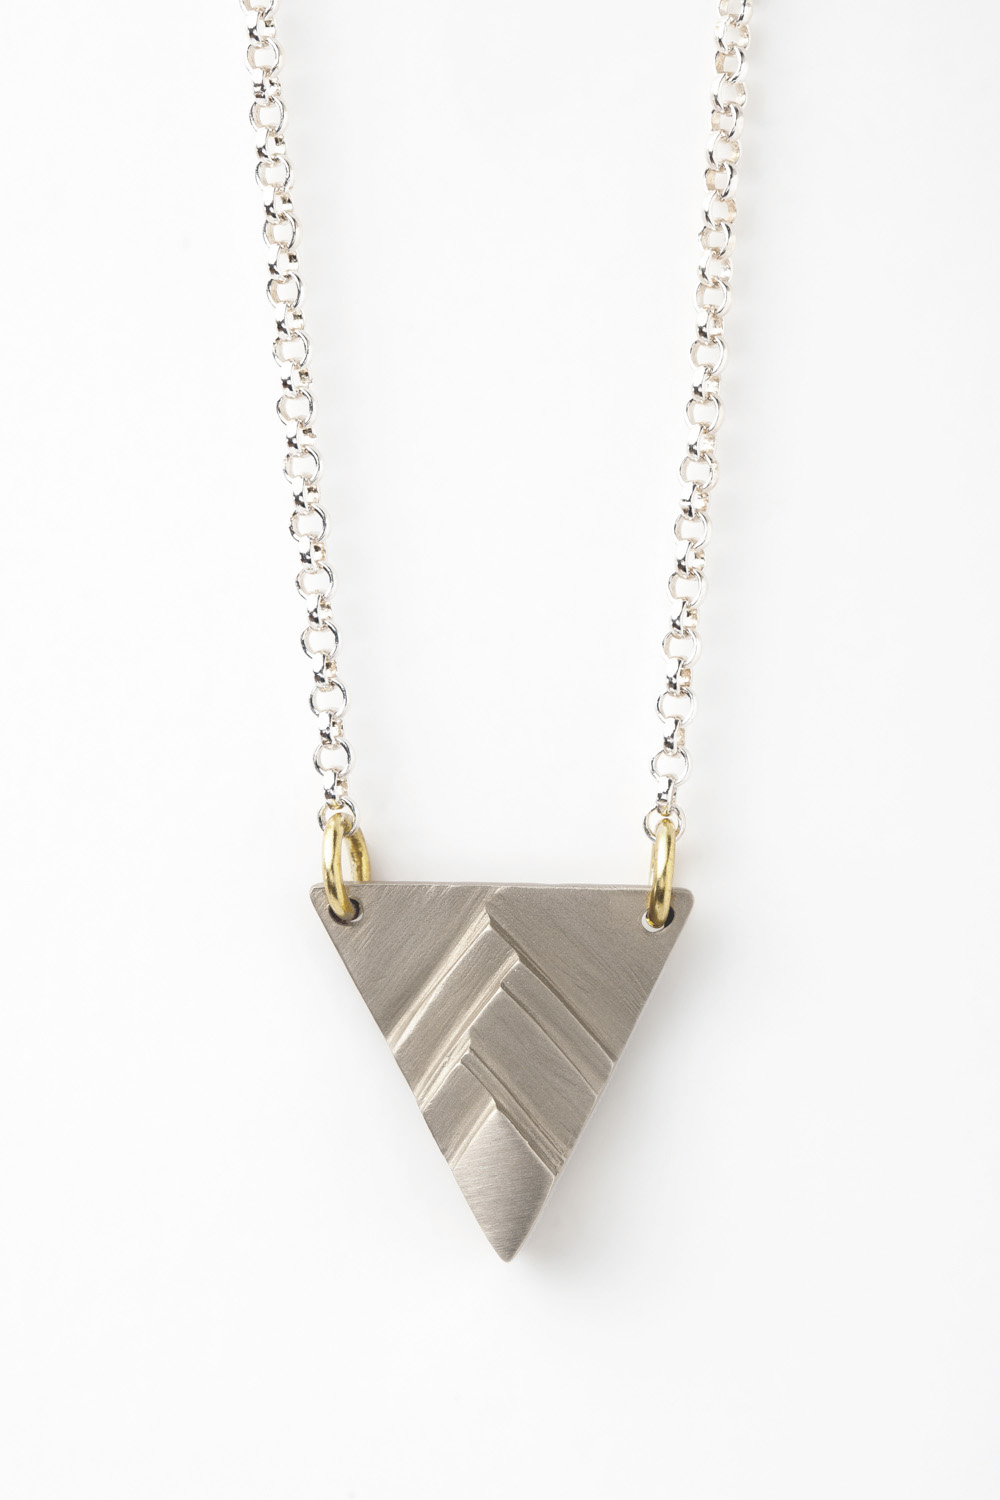 Silver Pinnacle Necklace (polished chain)